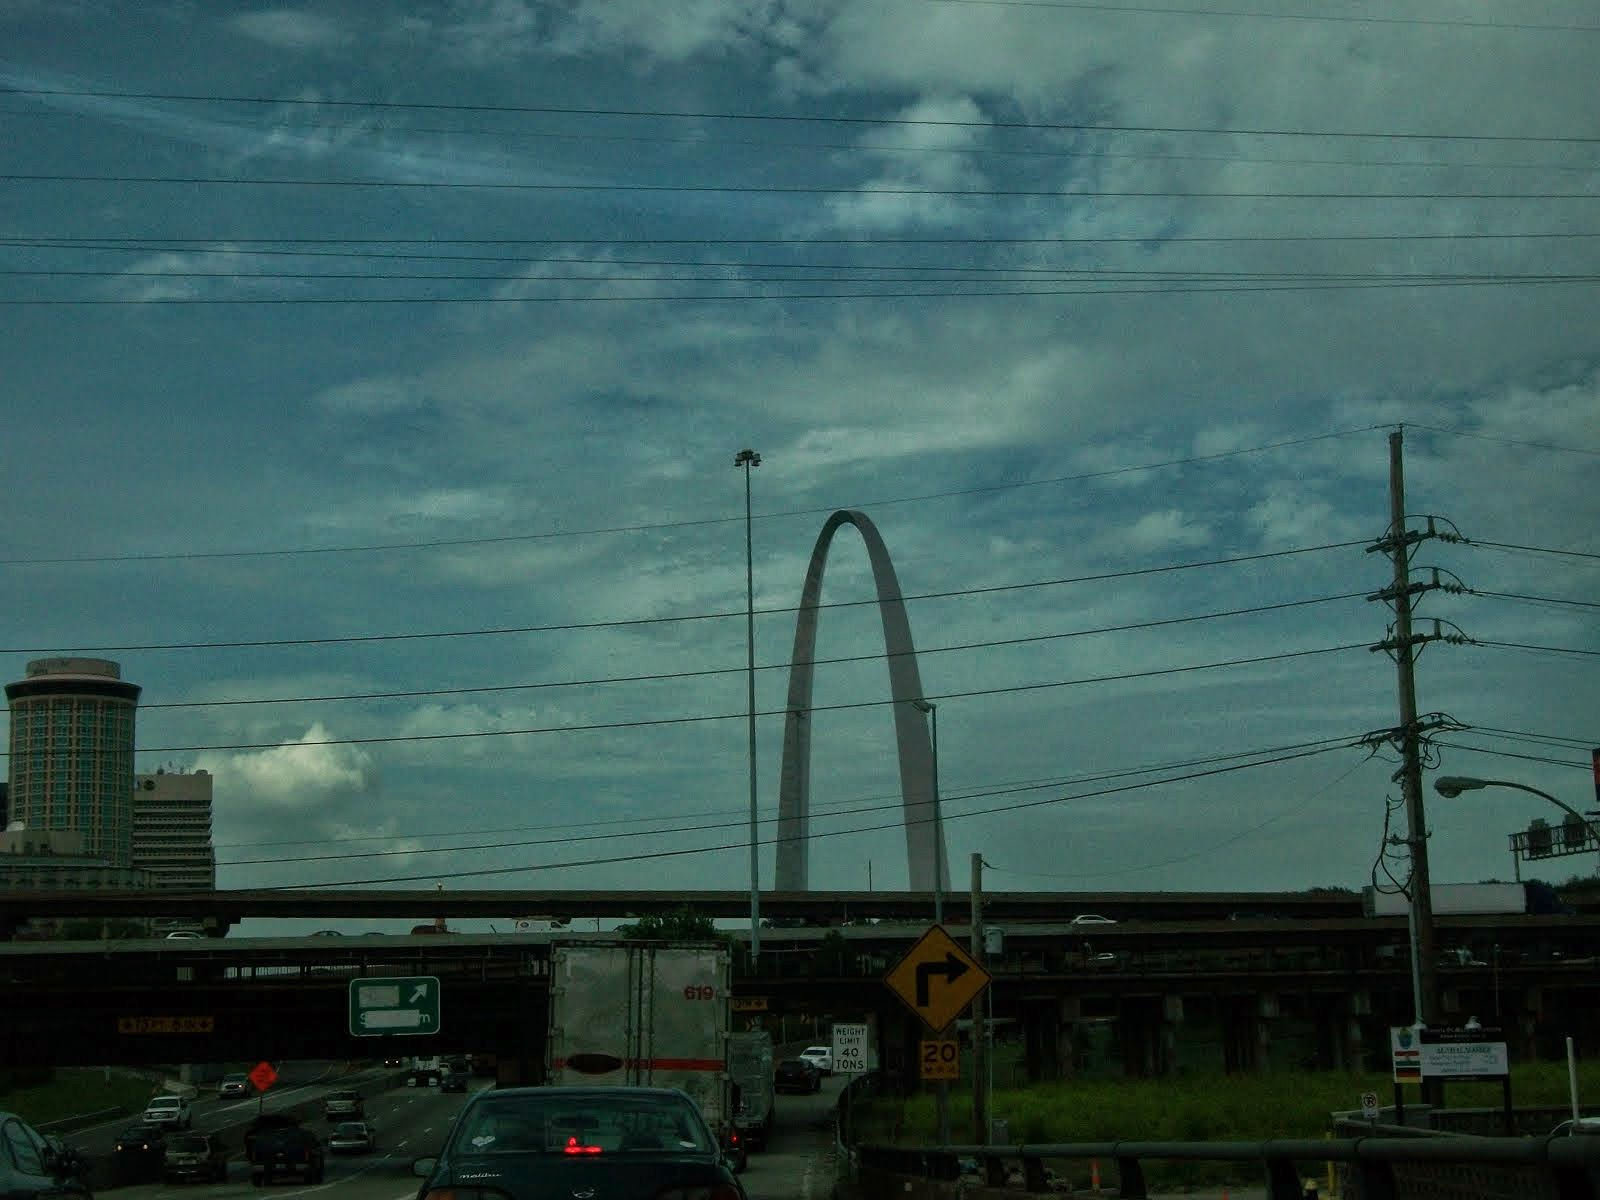 The famous St. Louis Arch, the gateway to the west